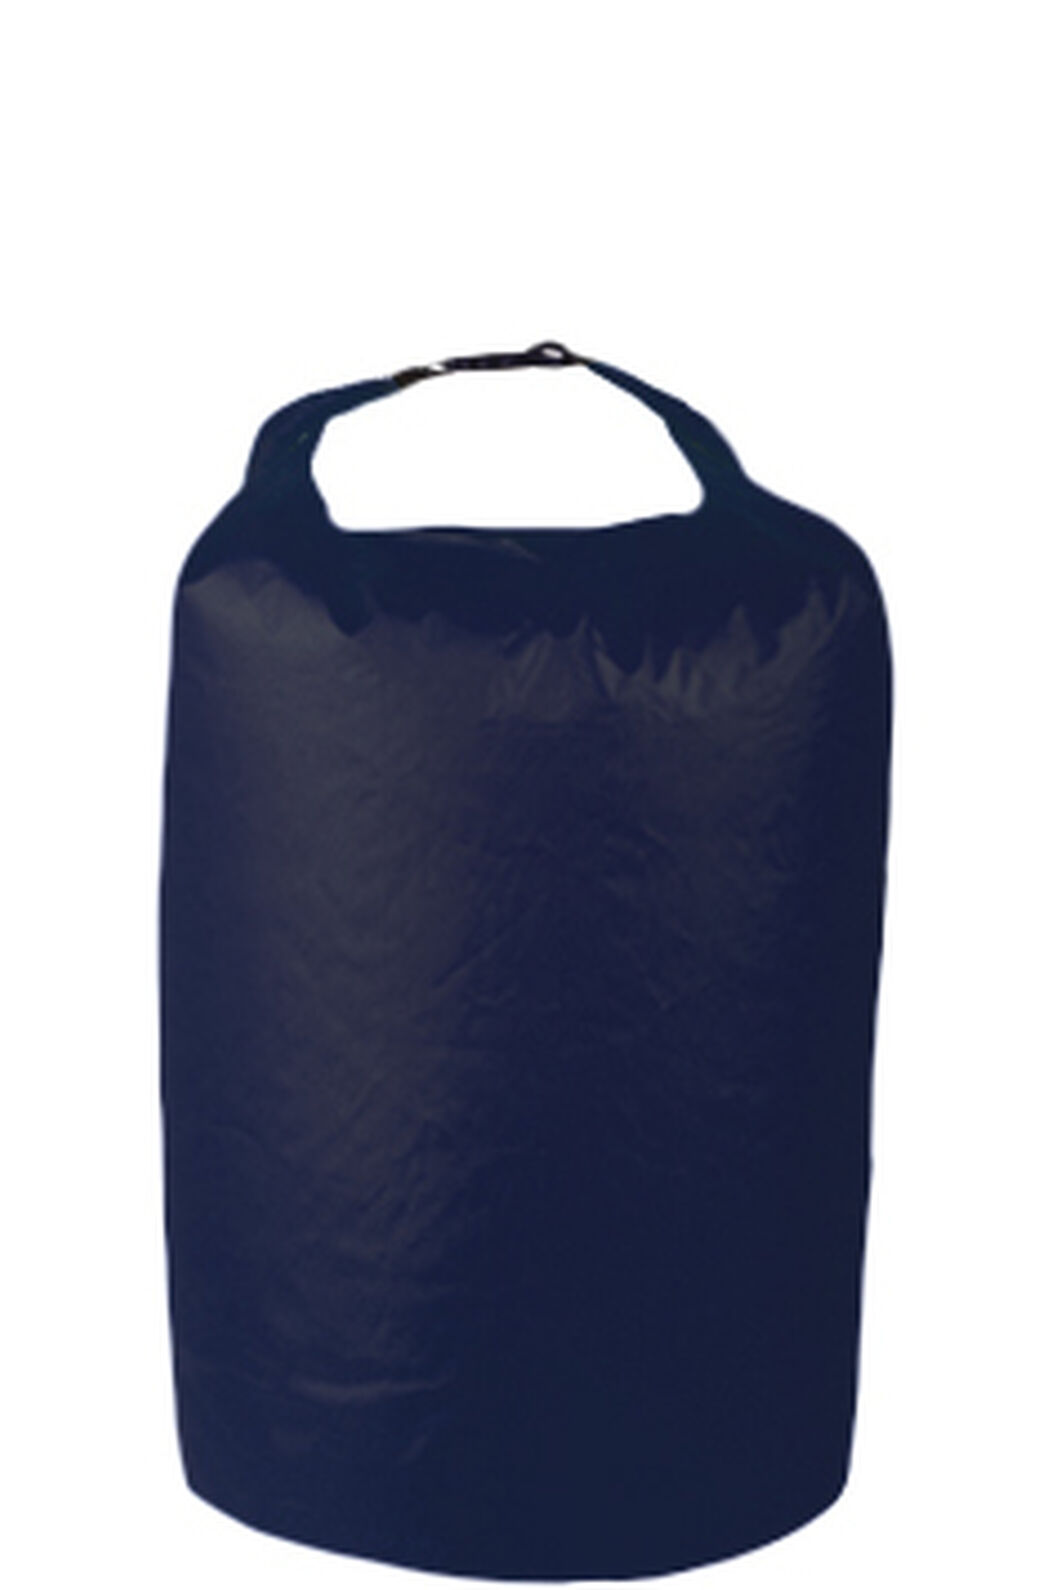 Macpac Ultra Dry Bag 15L, Sodalite Blue, hi-res